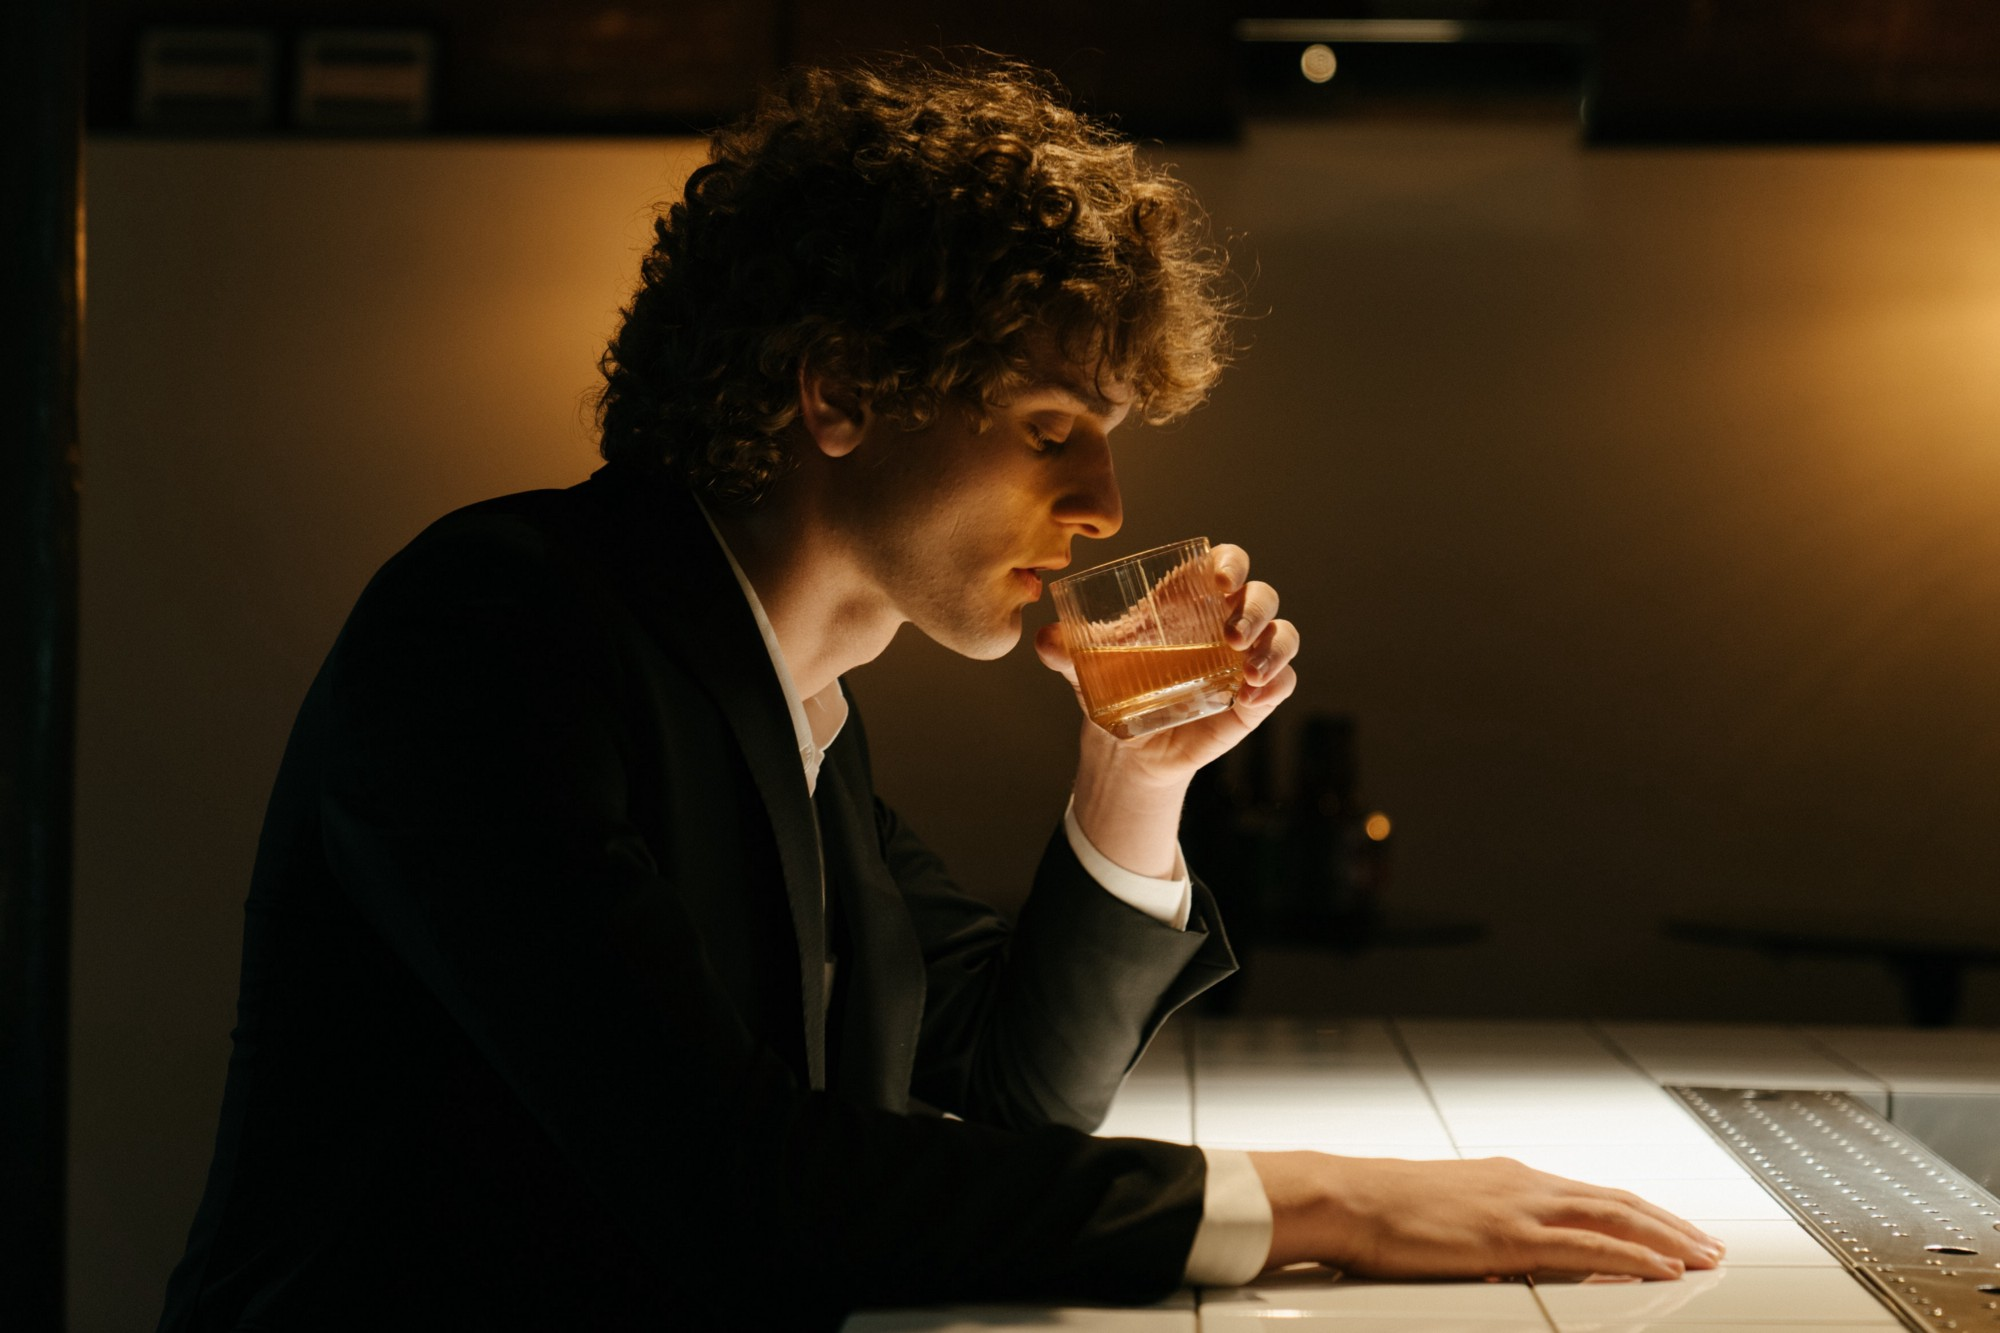 Single man drinking alone at the bar of a restaurant.